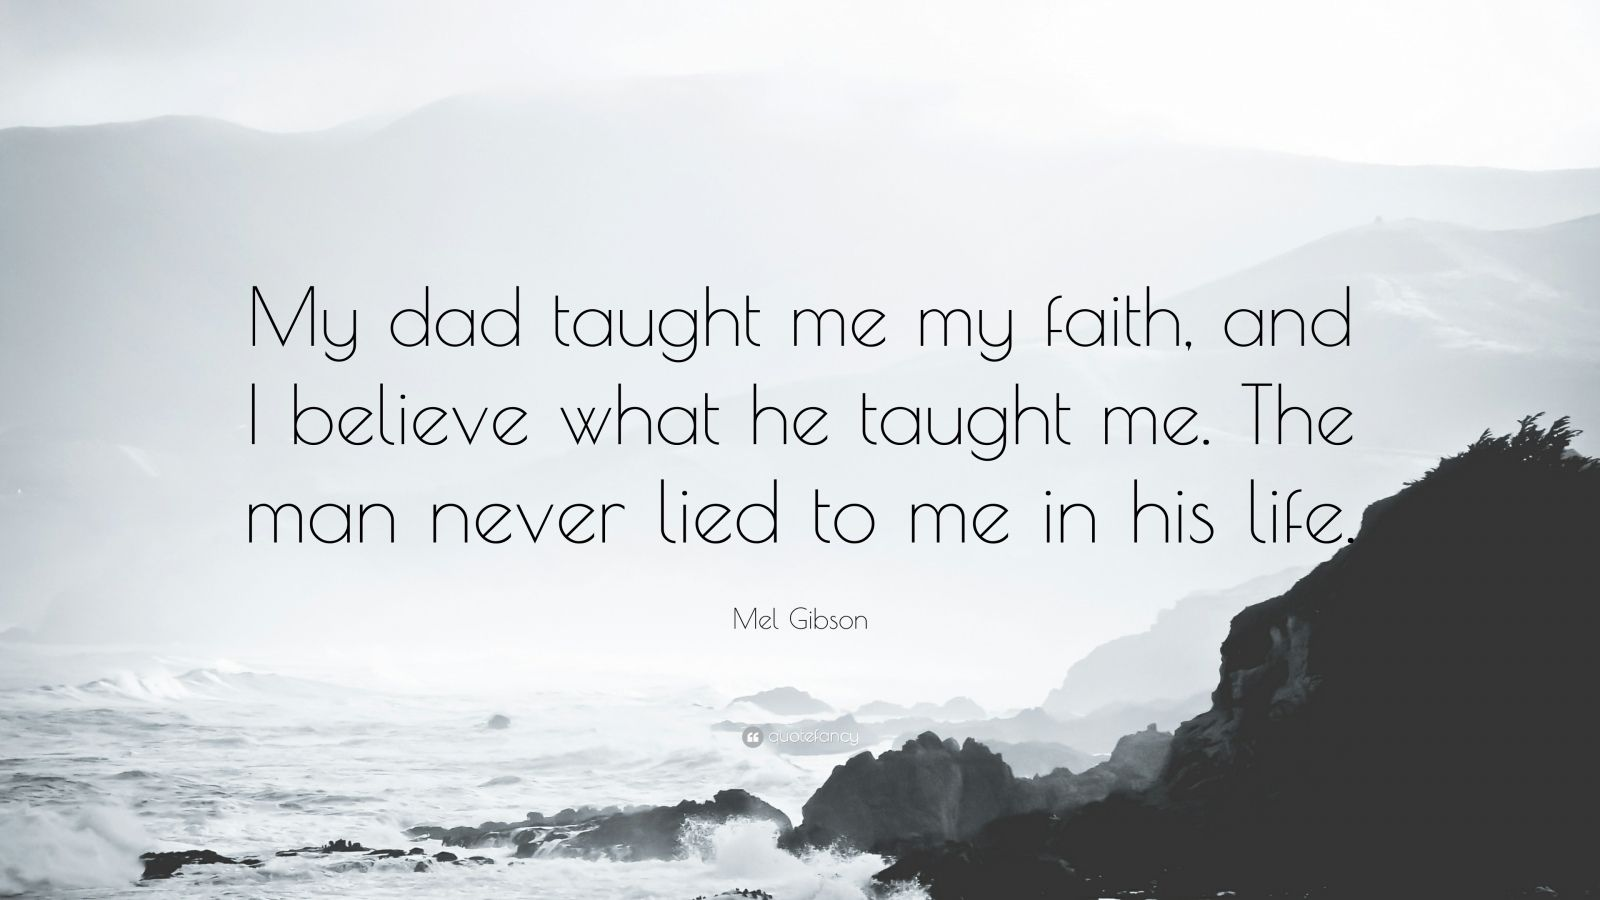 """Mel Gibson Quote: """"My dad taught me my faith, and I believe what he taught me. The man never lied to me in his life."""""""